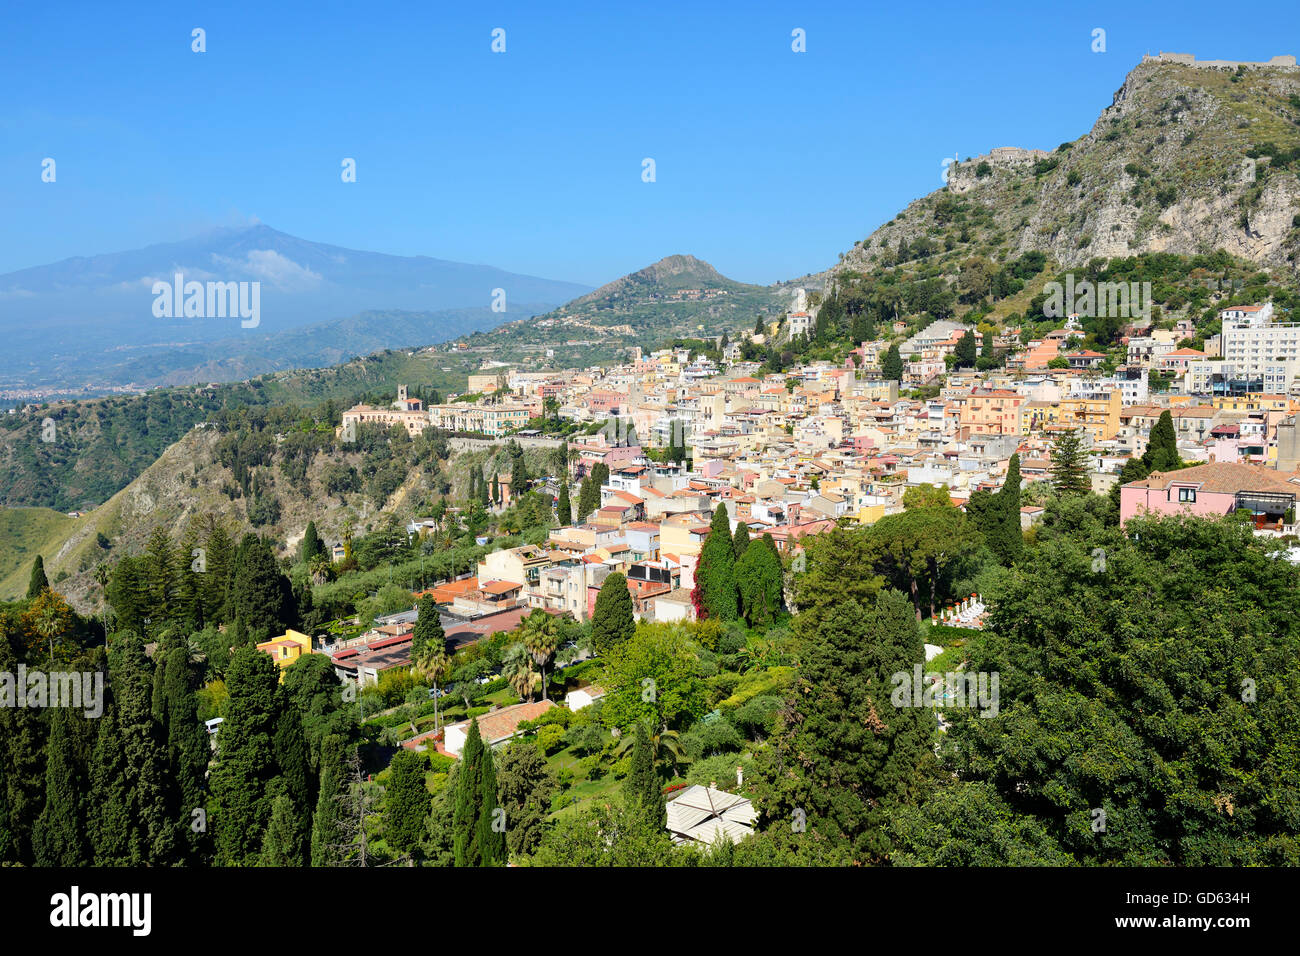 View of hilltop town of Taormina with Mount Etna in background - Taormina, Sicily, Italy - Stock Image